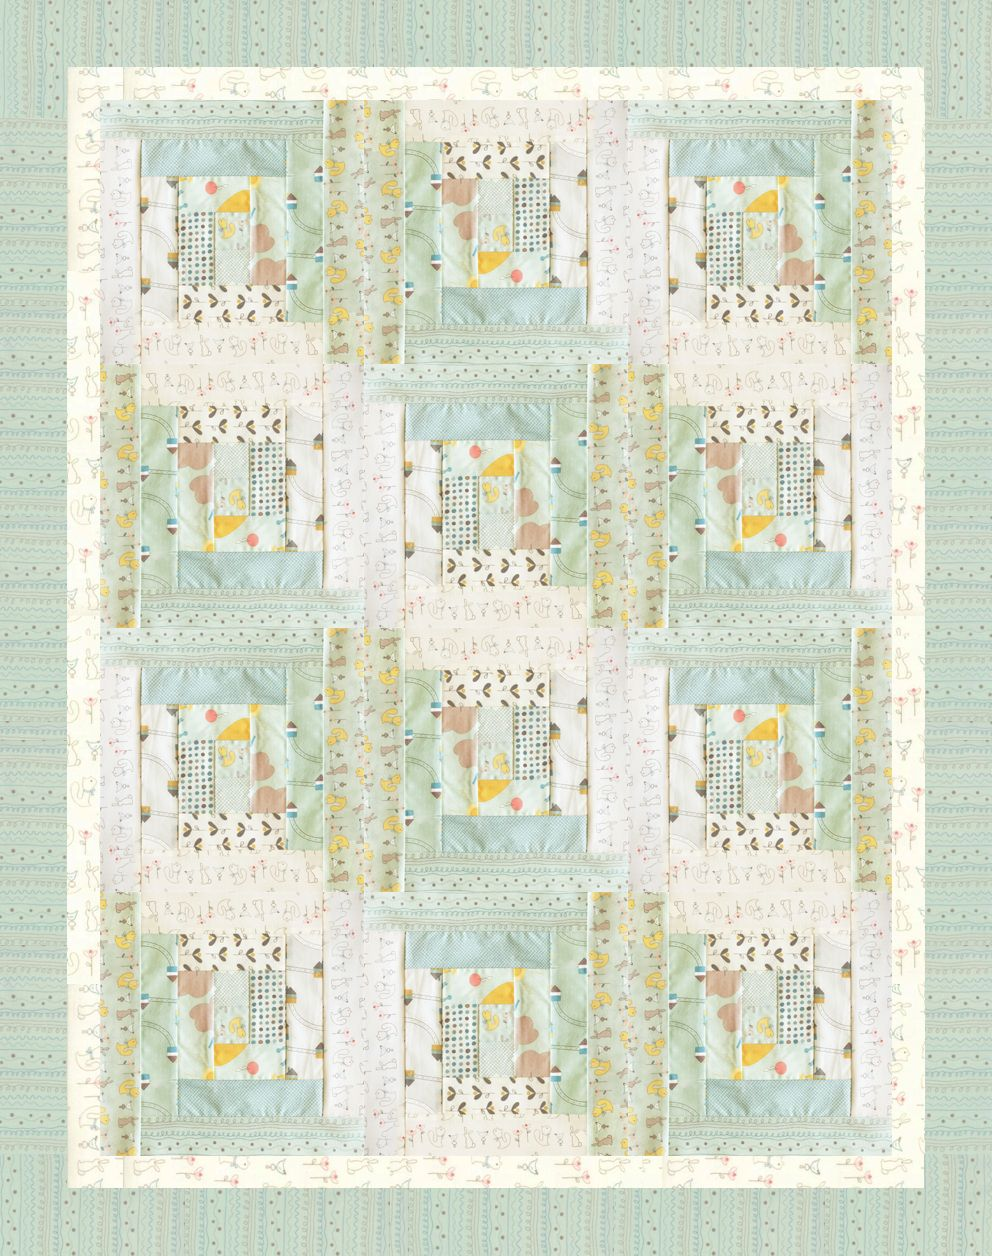 NEW Baby Quilt! From Moda Fabrics: Corner of 5th & Fun. We added 2 ... : quilts corner - Adamdwight.com